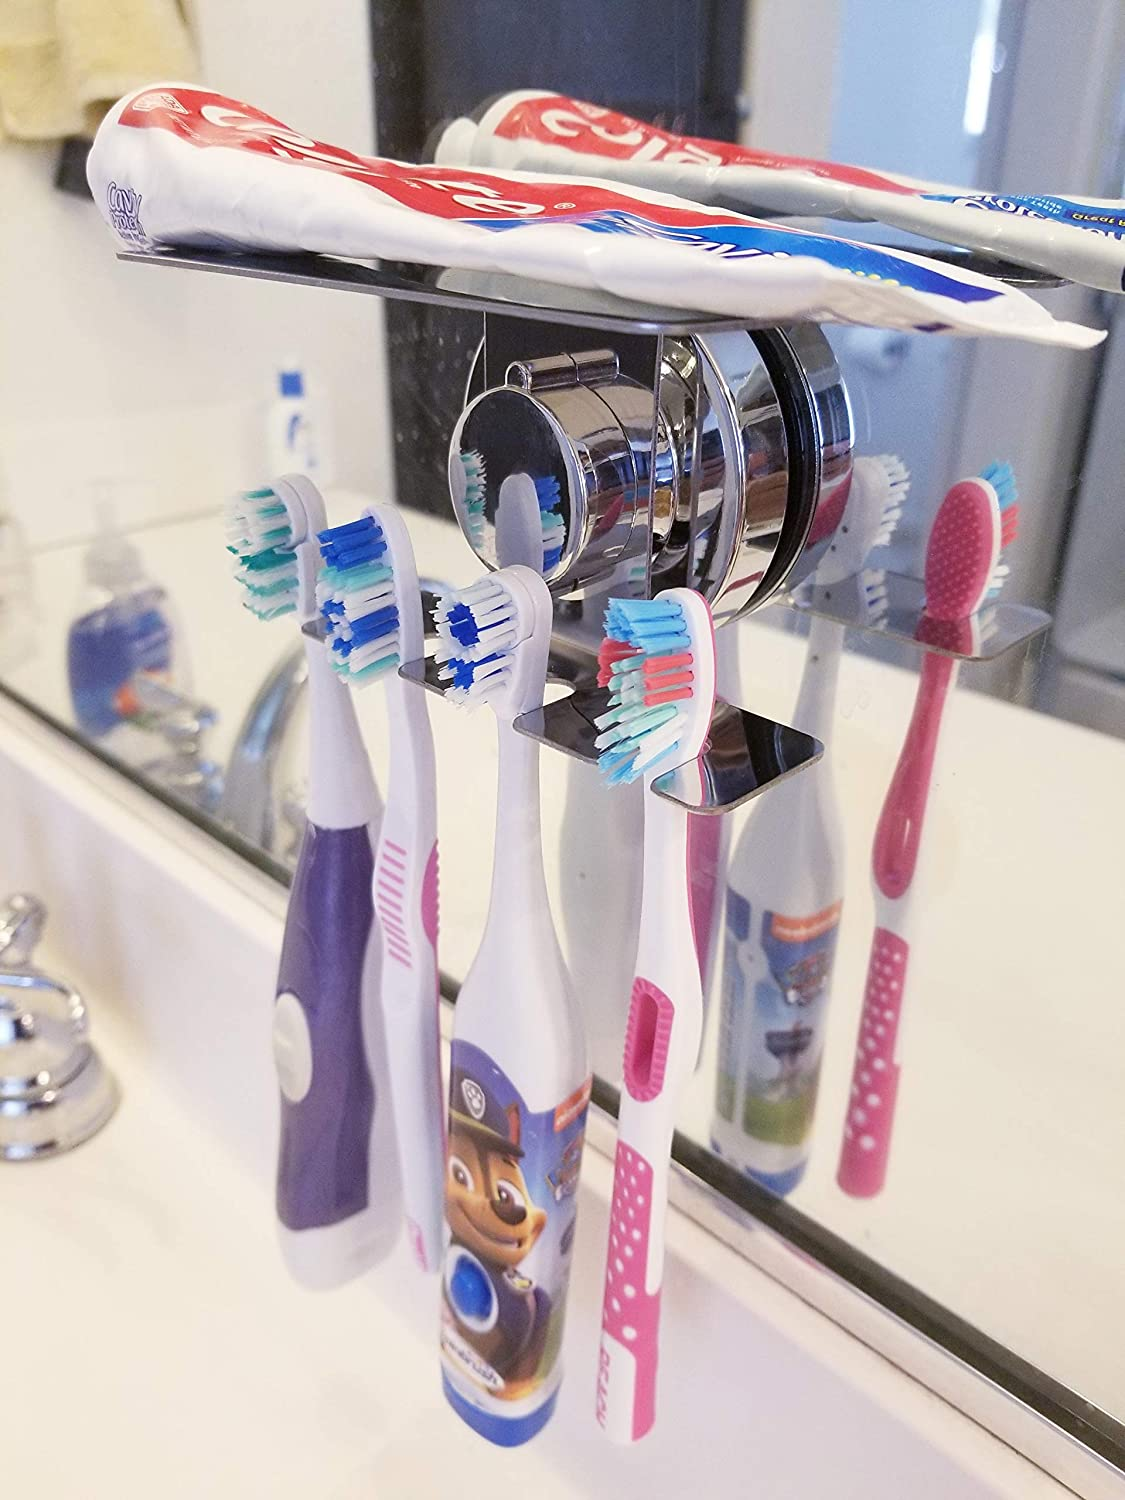 Gift Razor Jewelry Holder for Bathroom Shower Does NOT Fall Bathroom Organizer Mirror SIMPLELIFE Toothbrush Holder Suction Cup Wall Toothbrush Holder Wall Mounted Tile